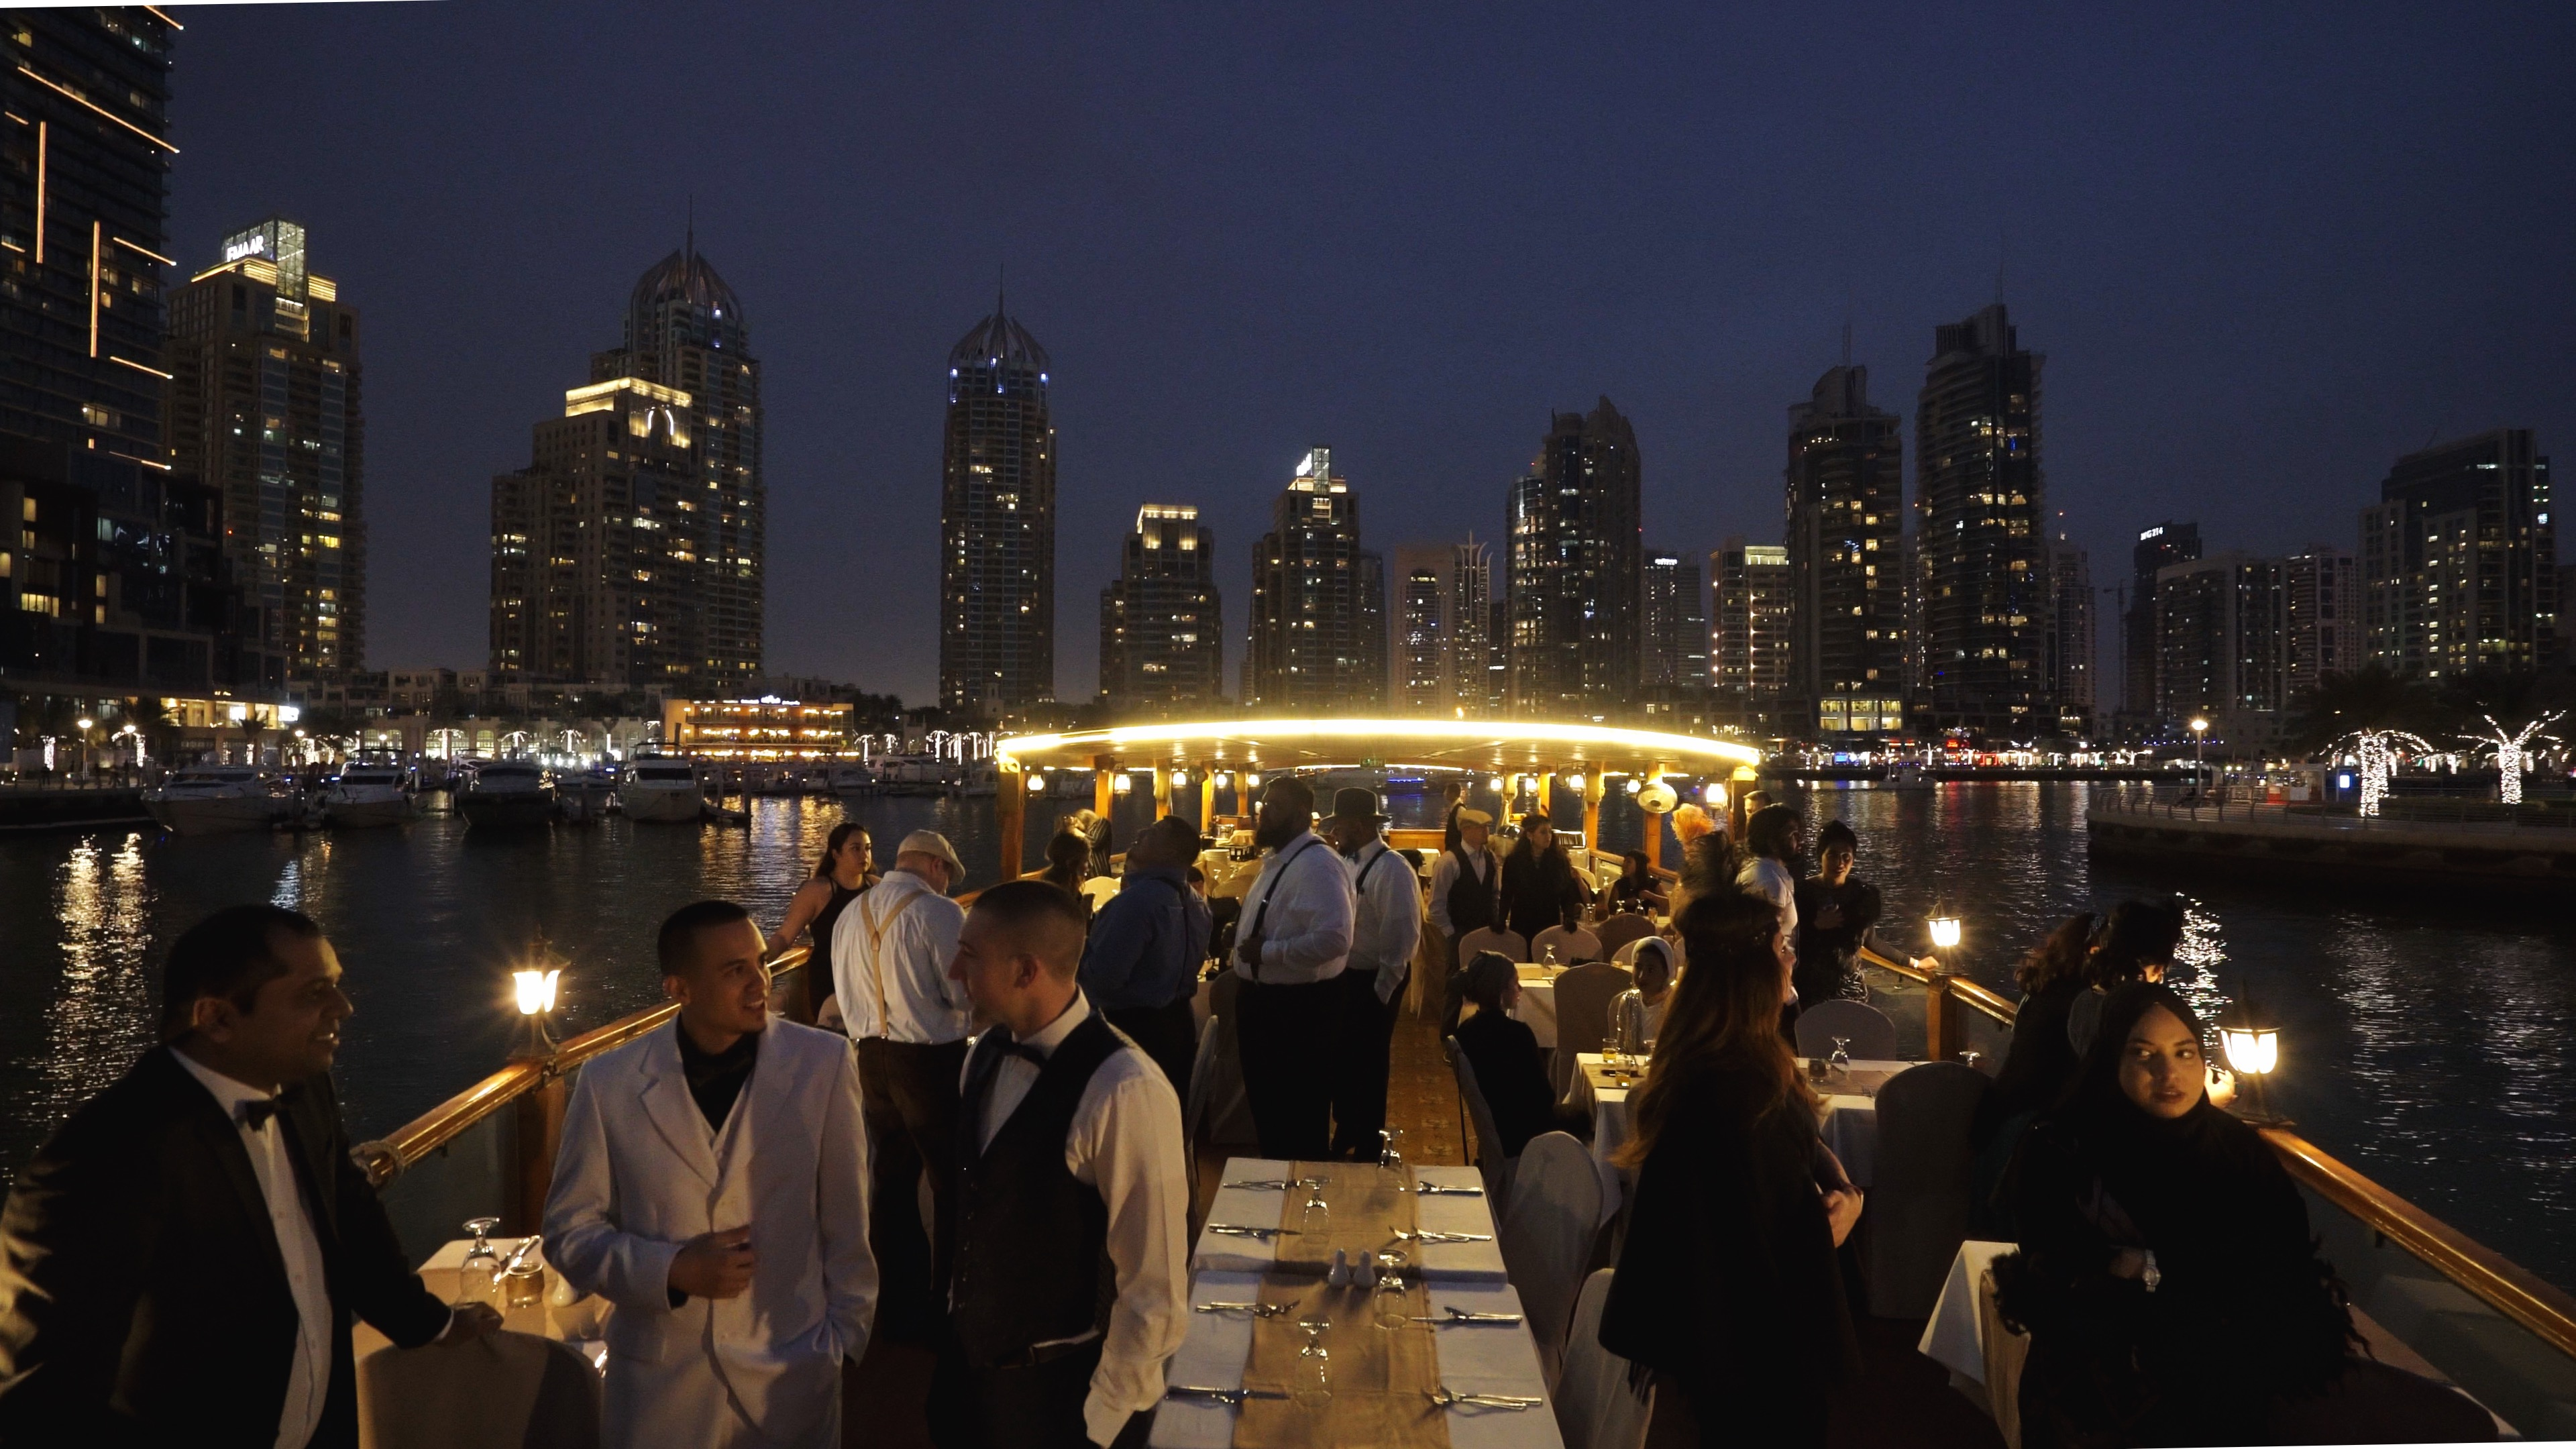 DUBAI MARINA WEDDING